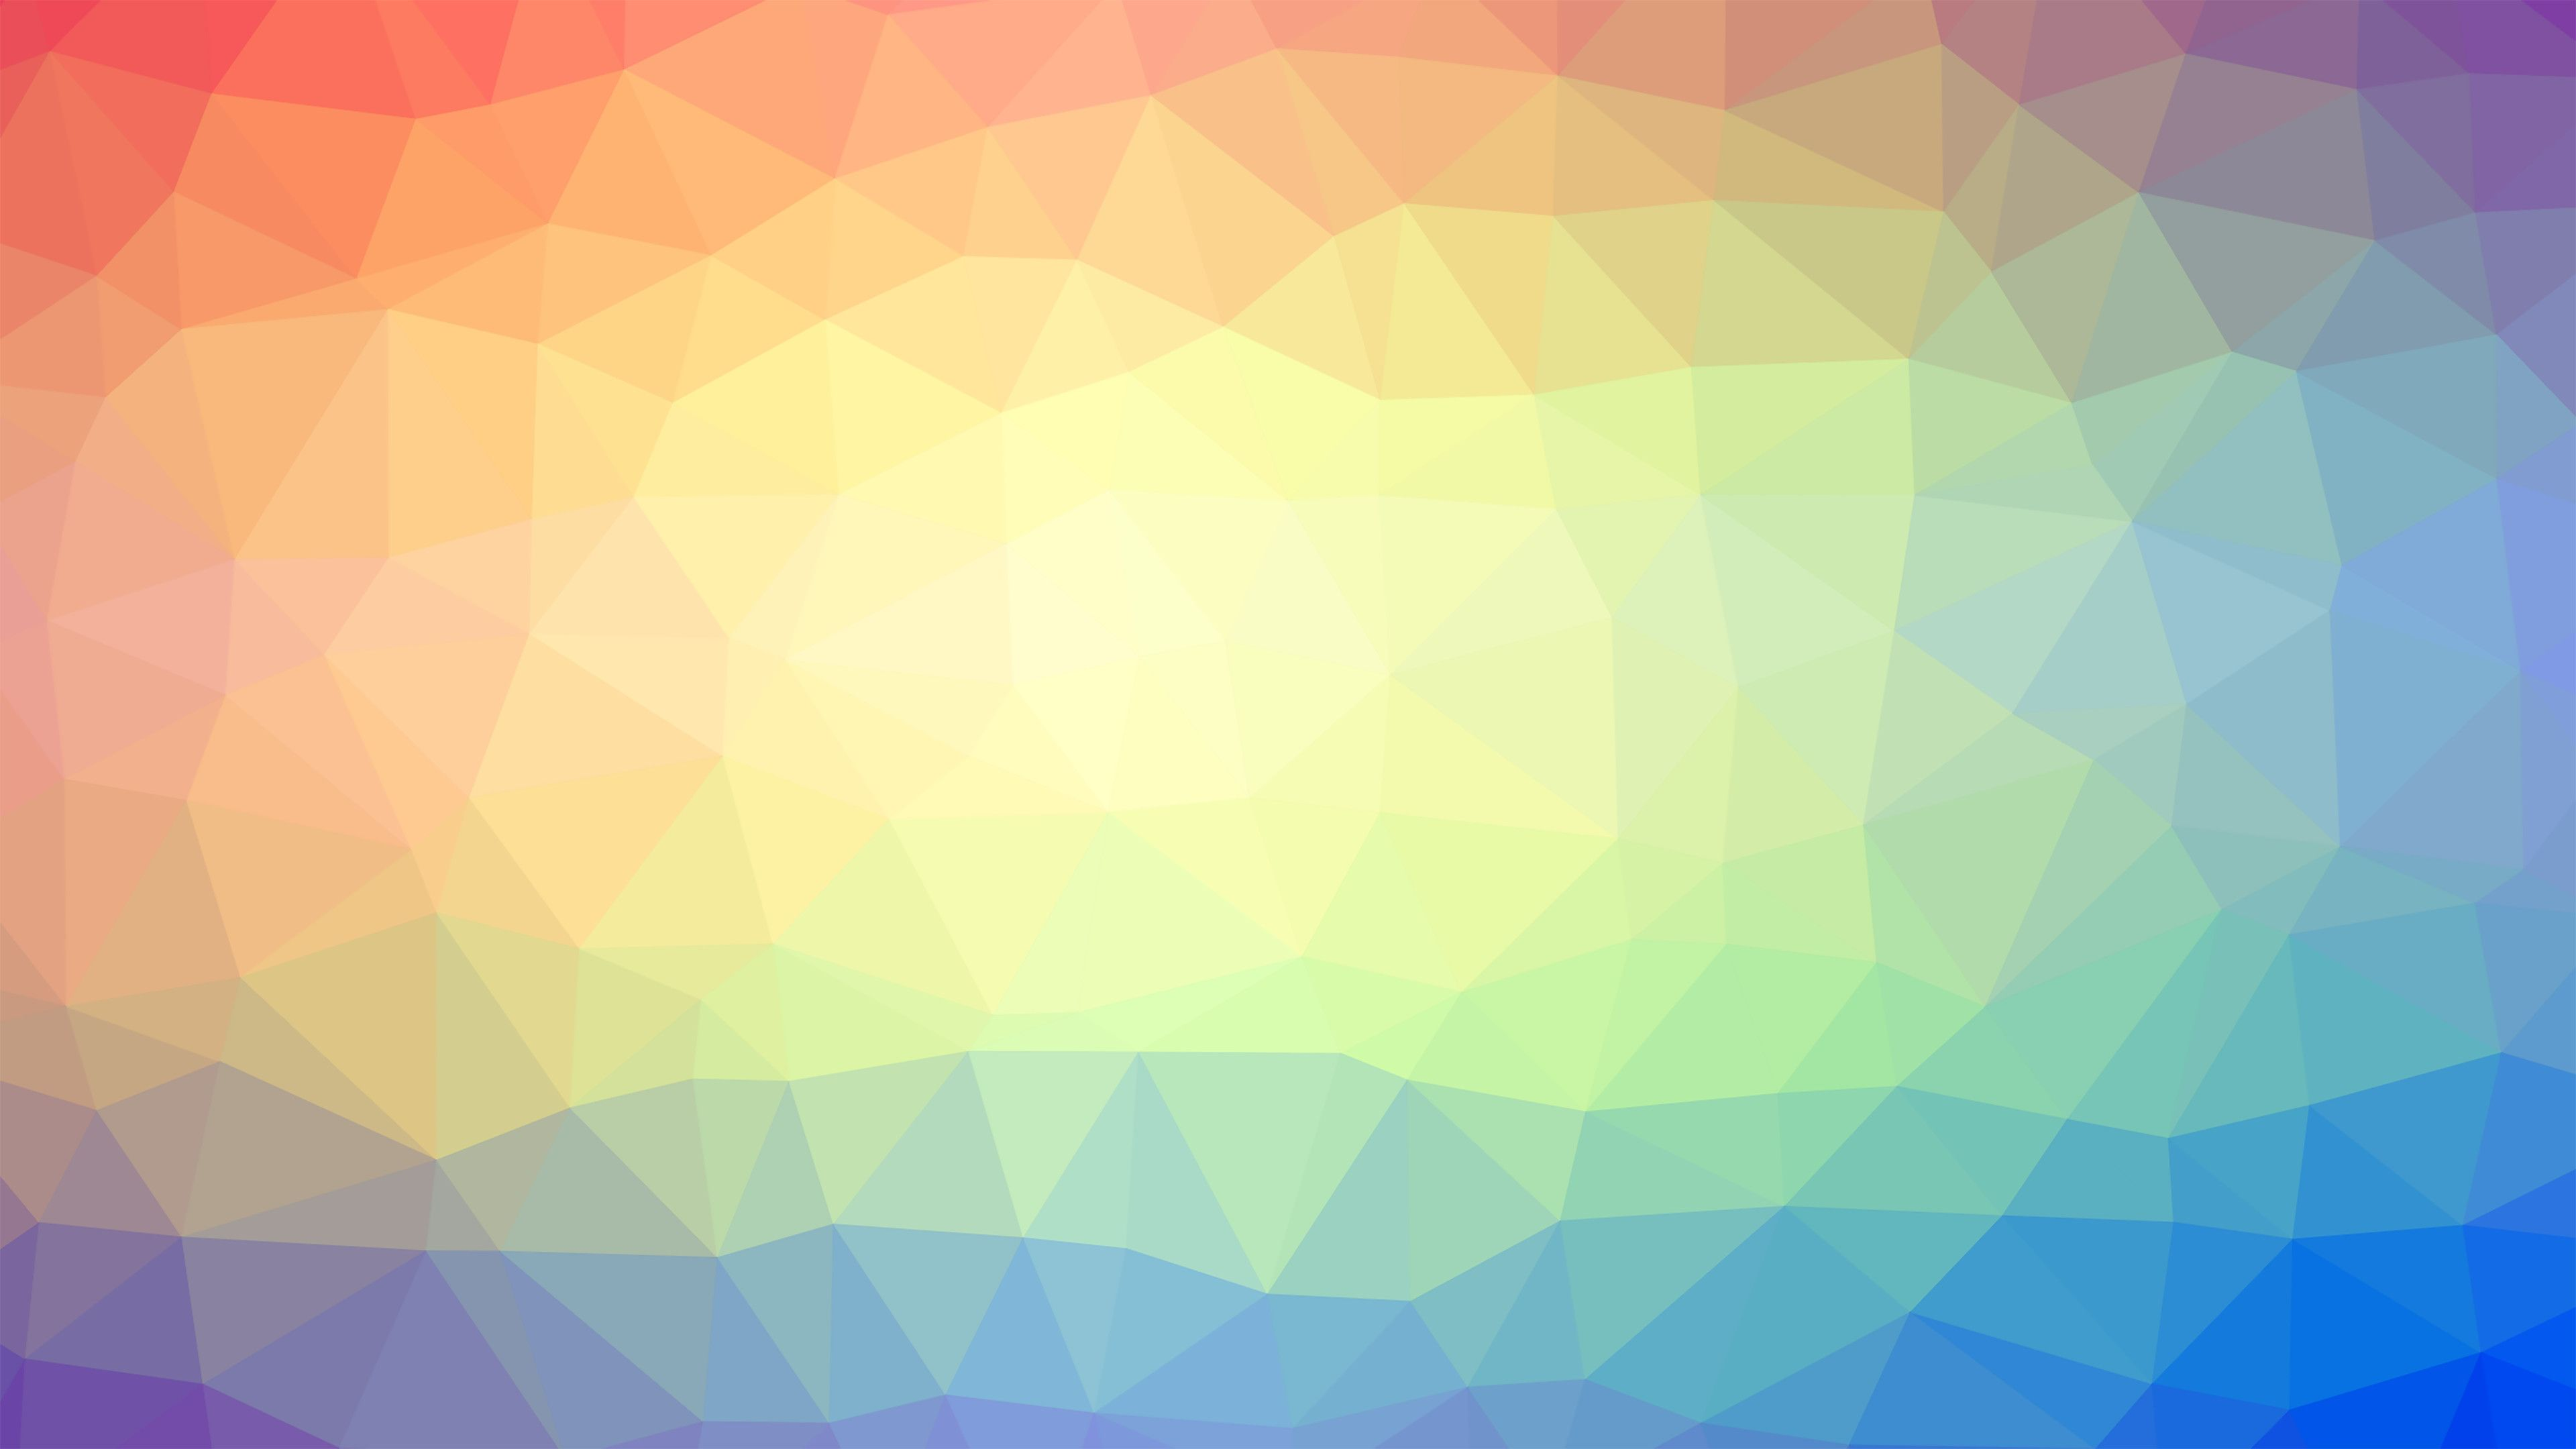 x channel art. Youtube clipart pastel